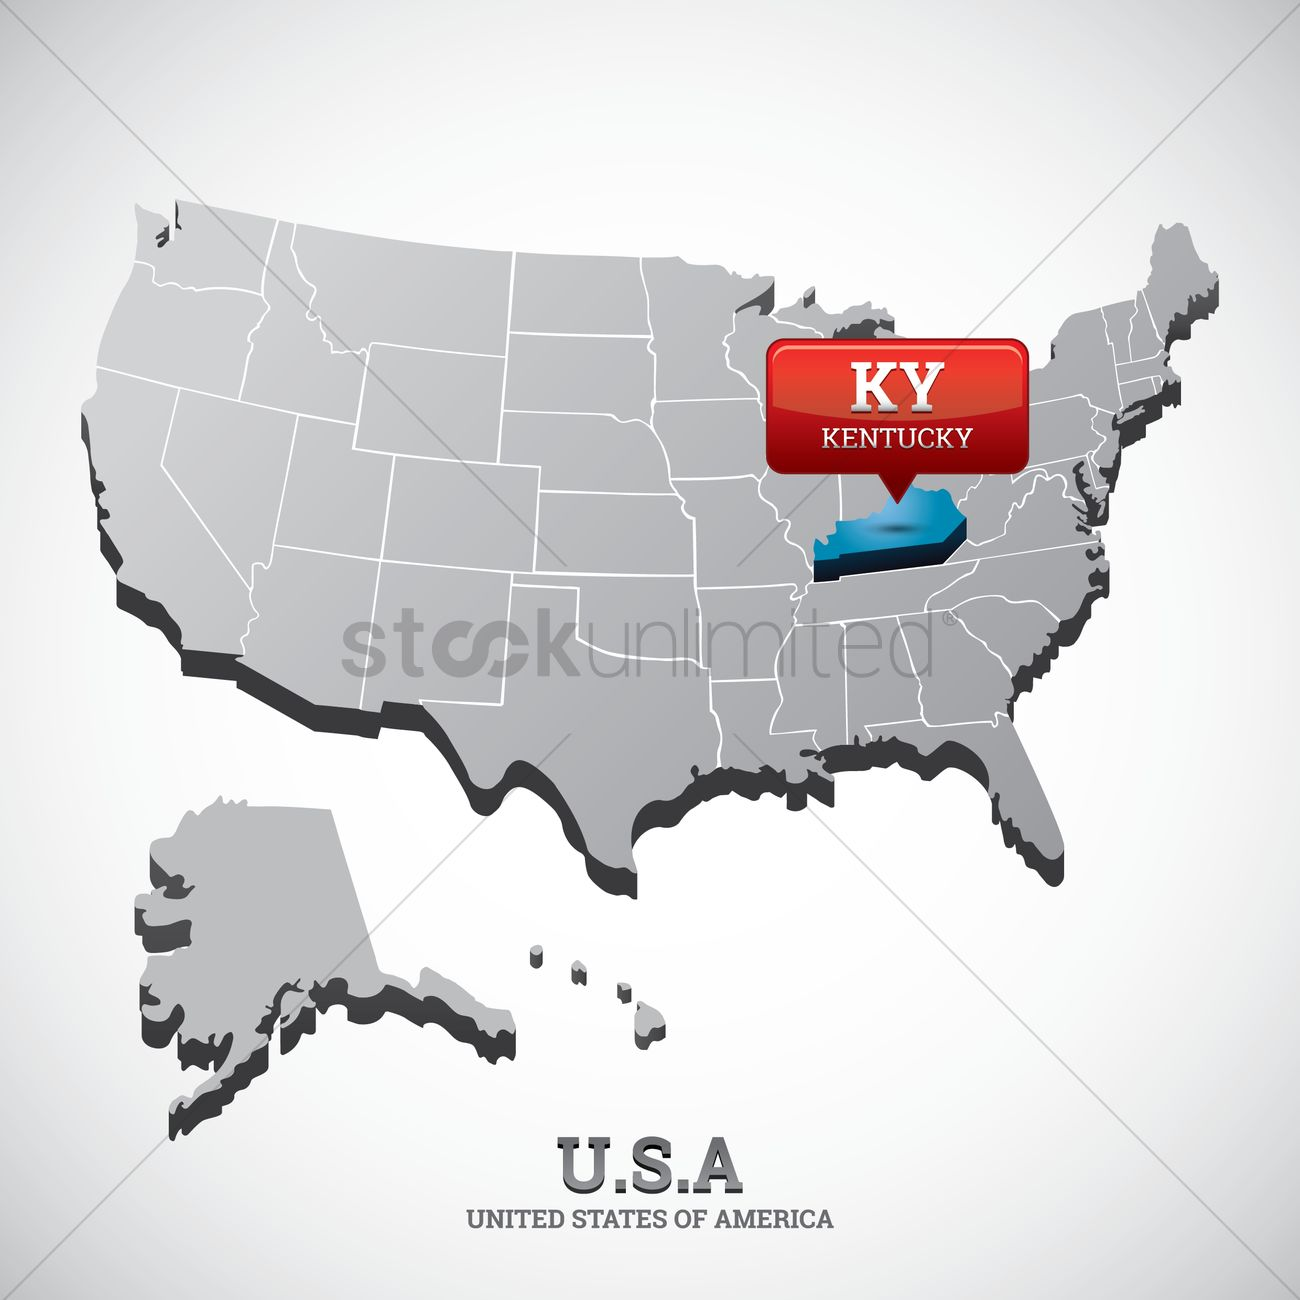 Kentucky state on the map of usa Vector Image - 1532661 | StockUnlimited